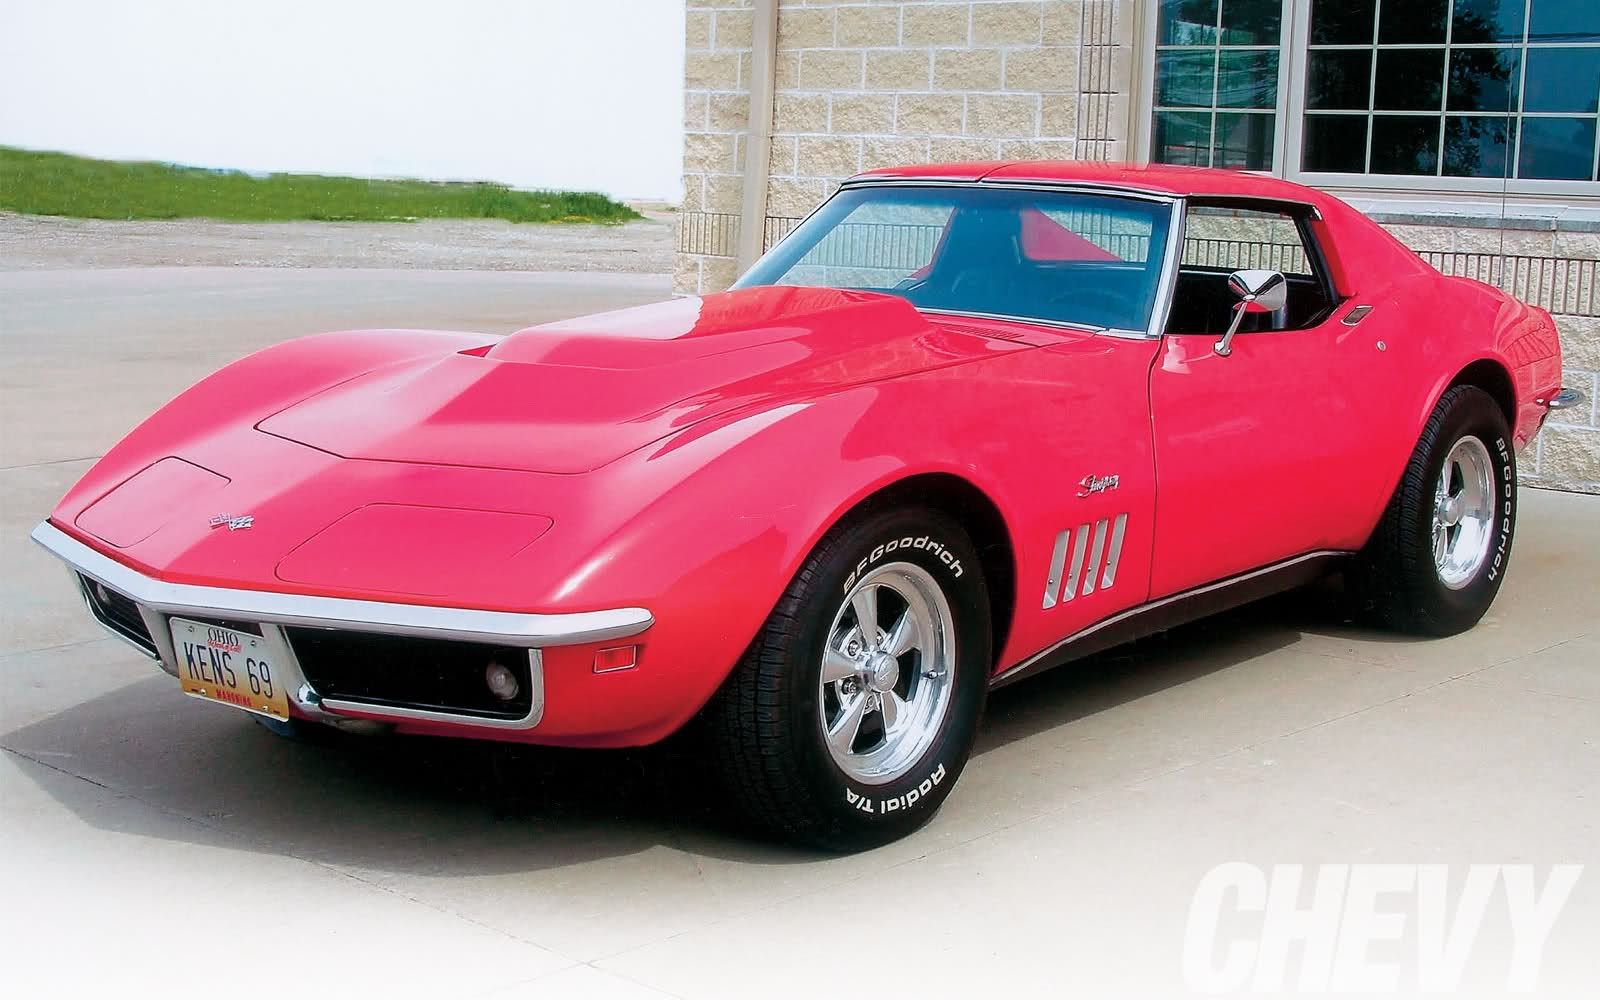 Chevy corvette stingray one day i ll own one of these